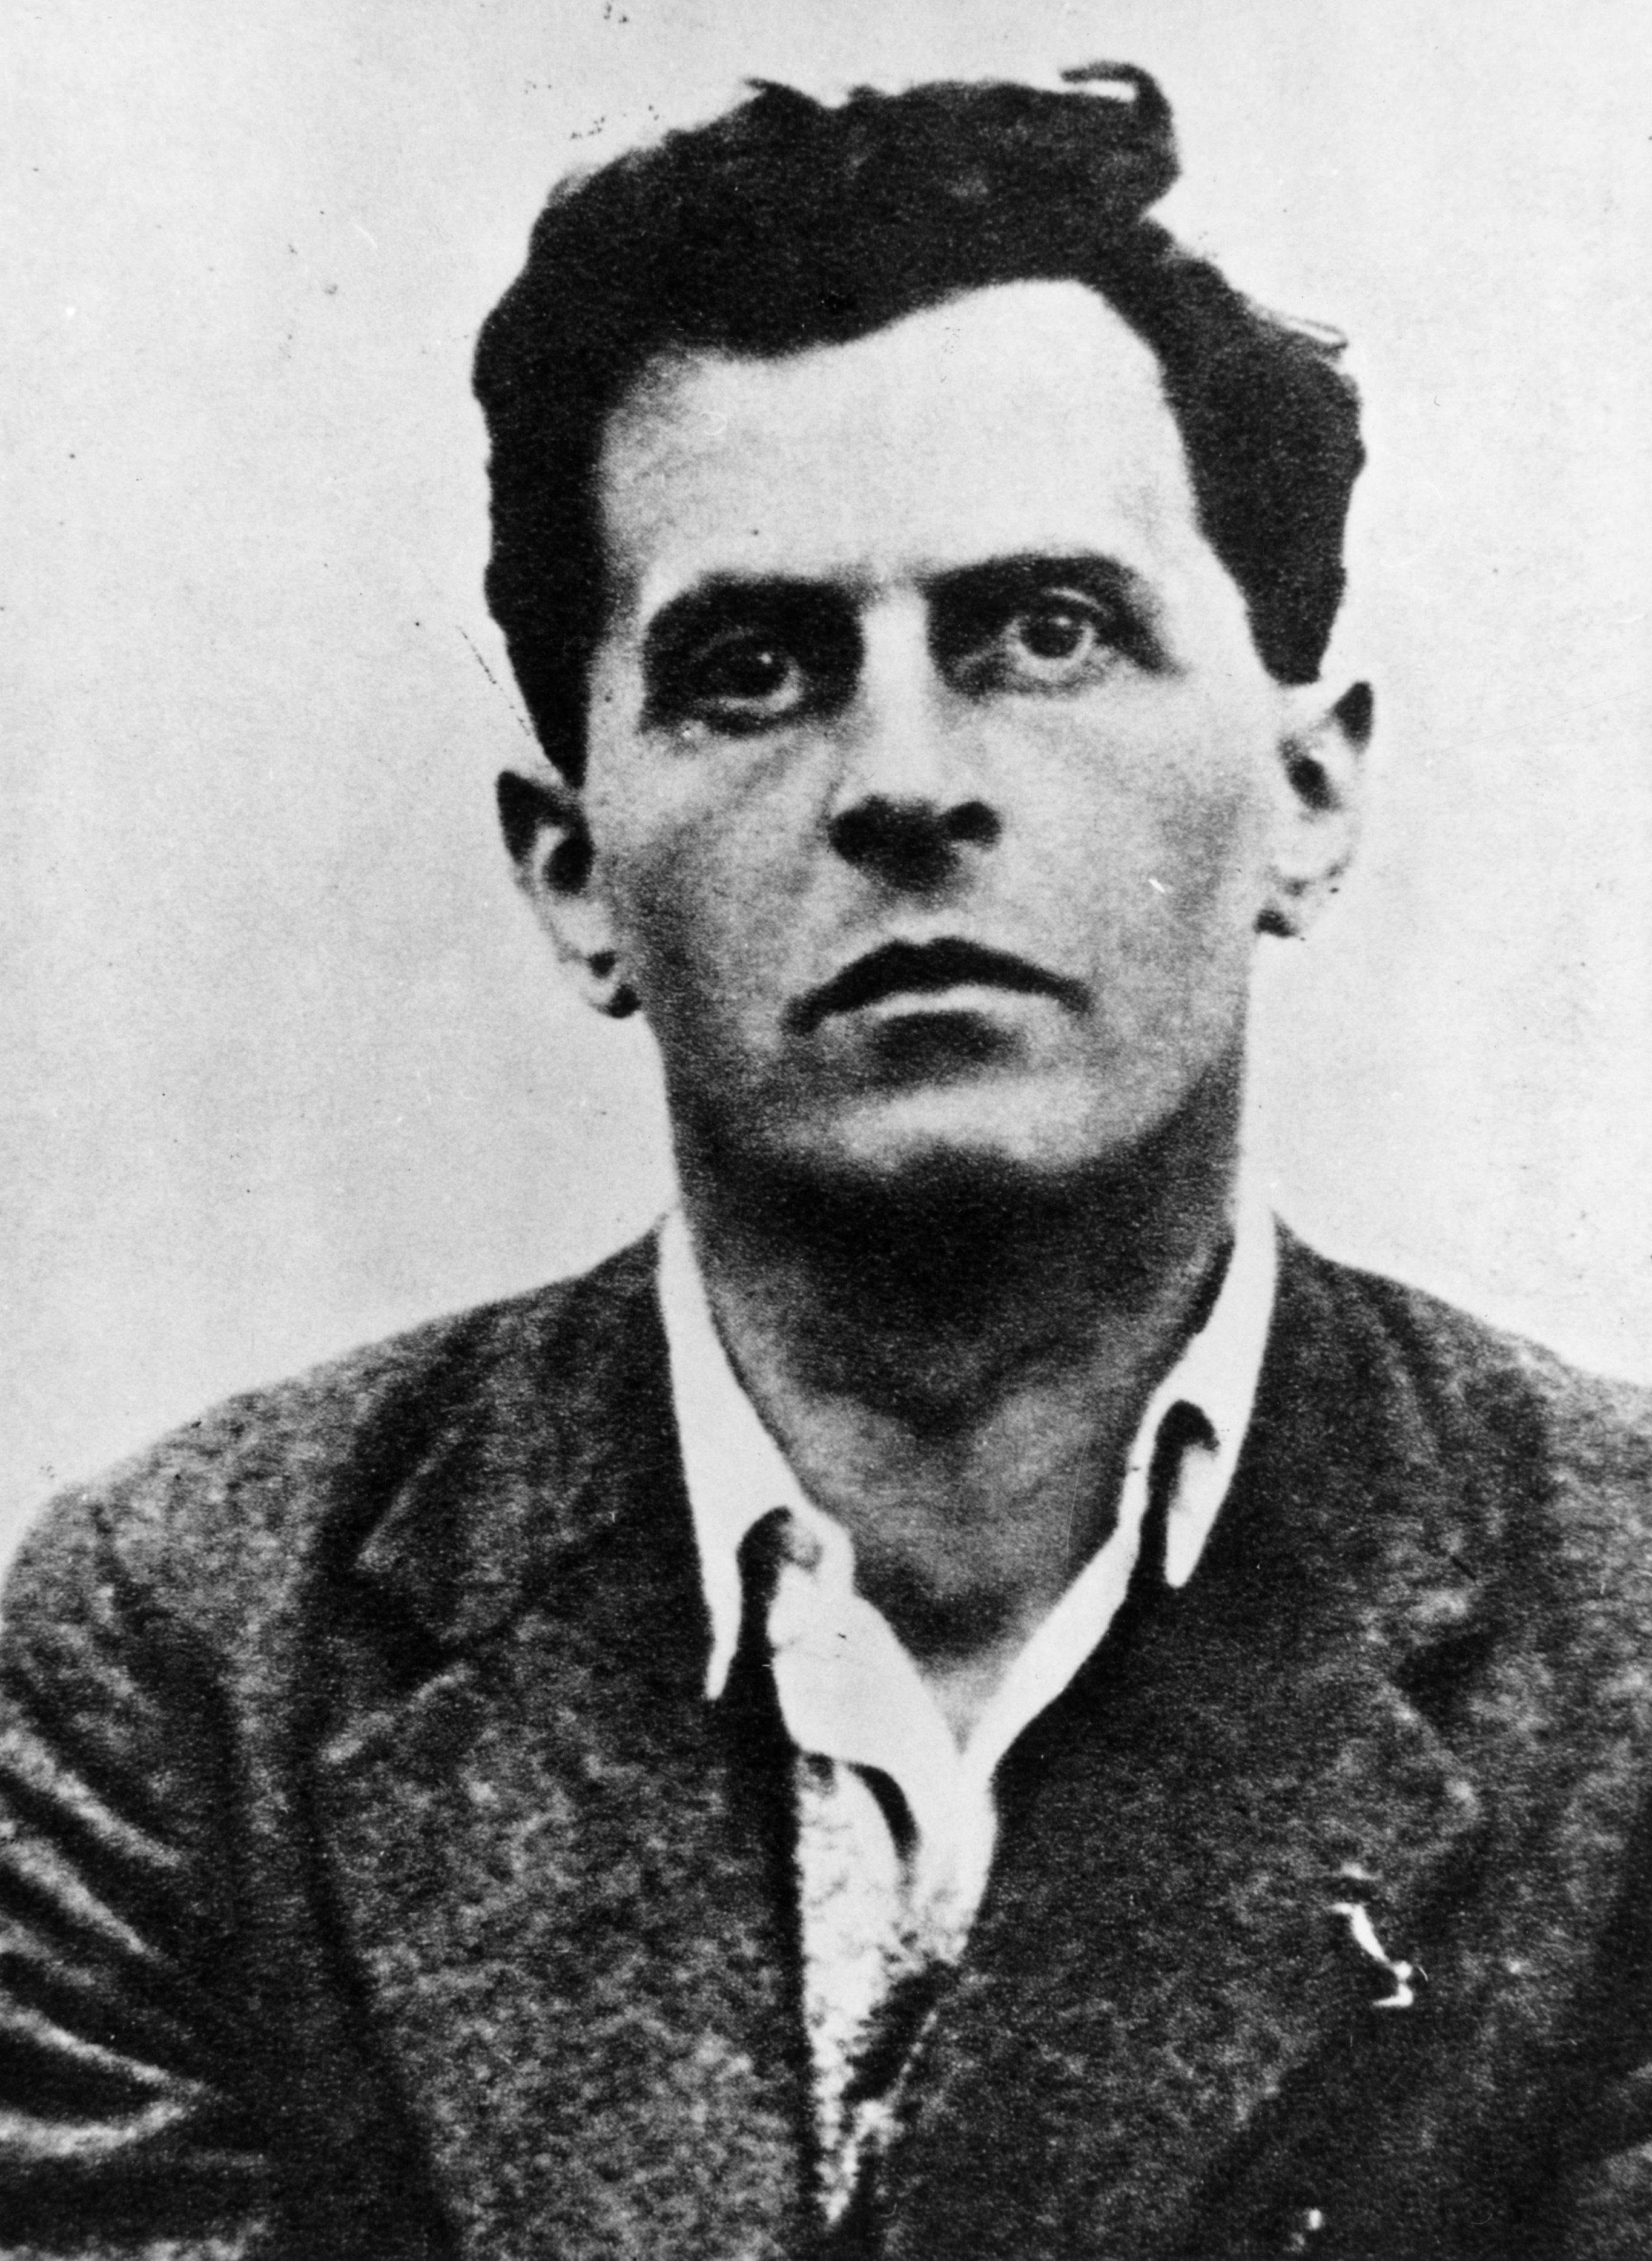 1548663784592_GettyImages-2673420.jpg - Ludwig Wittgenstein (1889-1951). Filosofo, ingegnere e logico austriaco